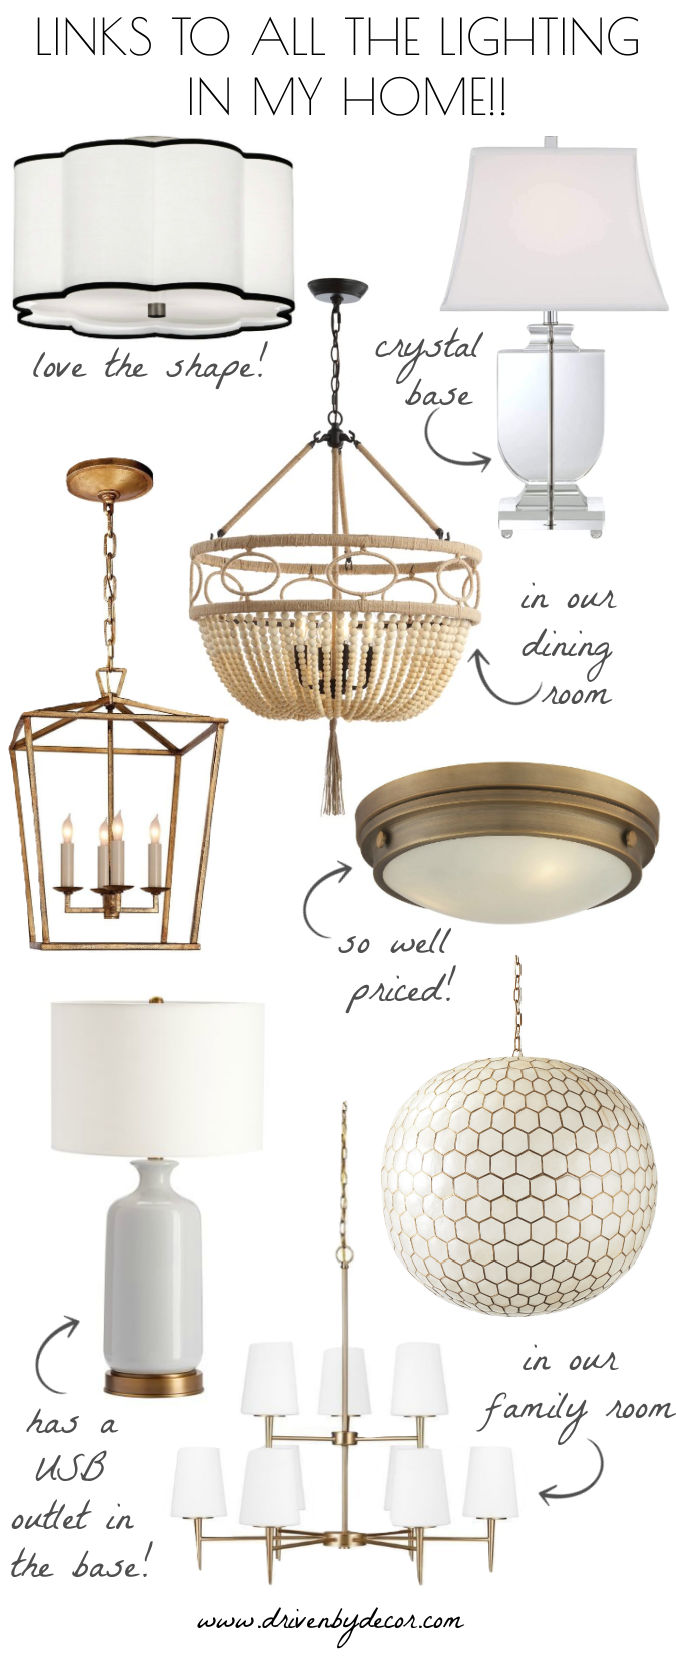 The light fixtures we chose for our home!